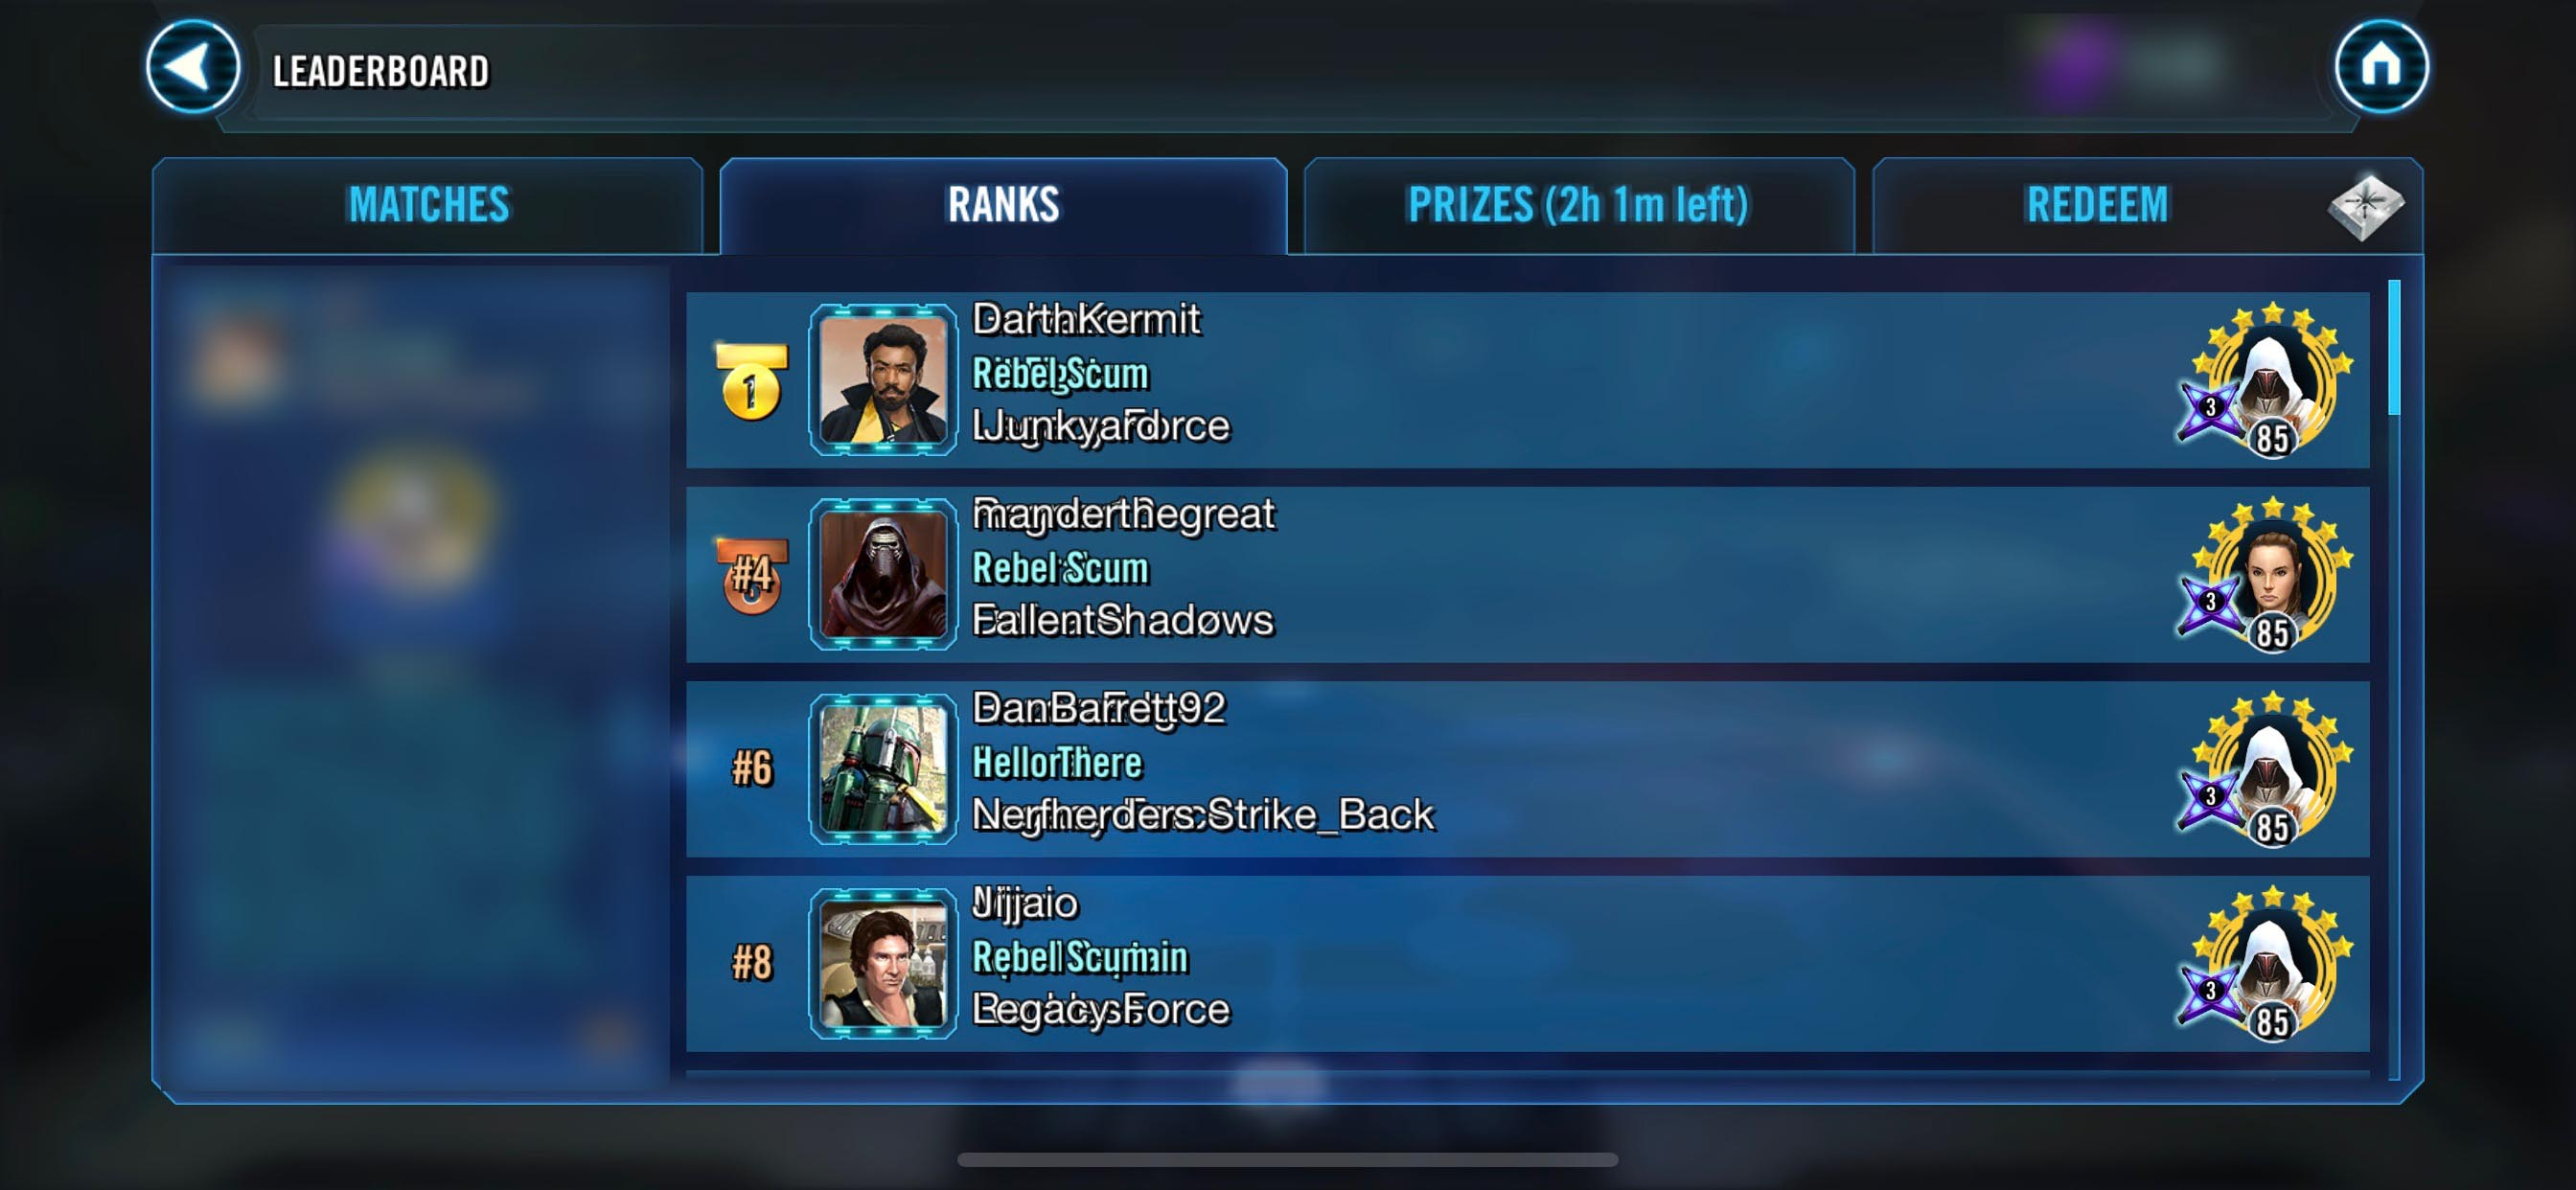 SWGOH_Arena_Leaderboard_Overlapping_Ranks.jpg